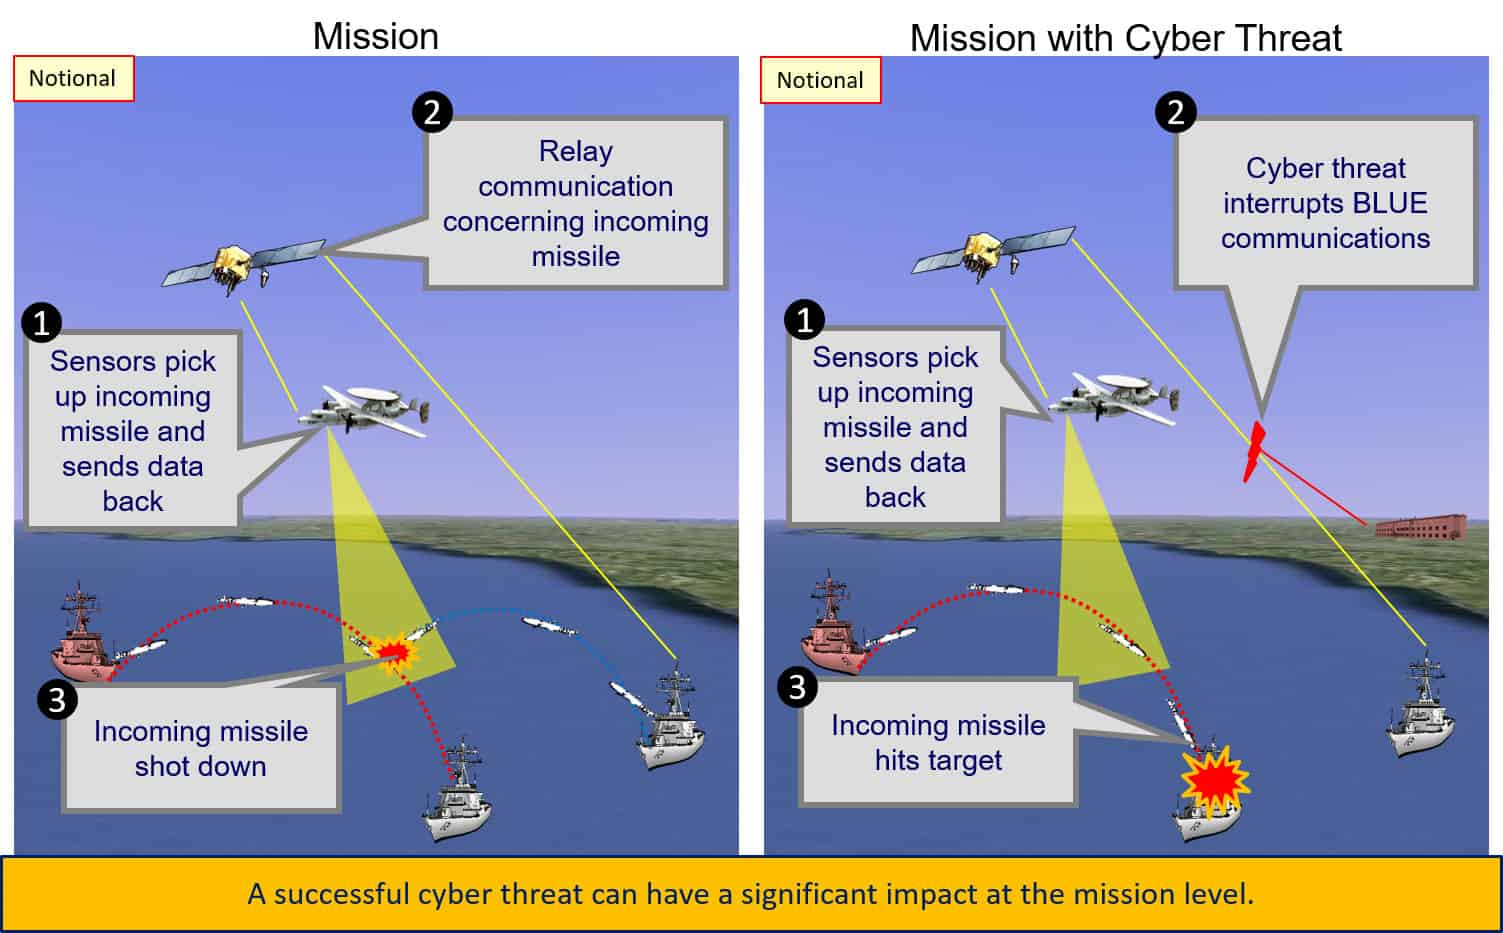 Successful Cyber Threat at Mission Level